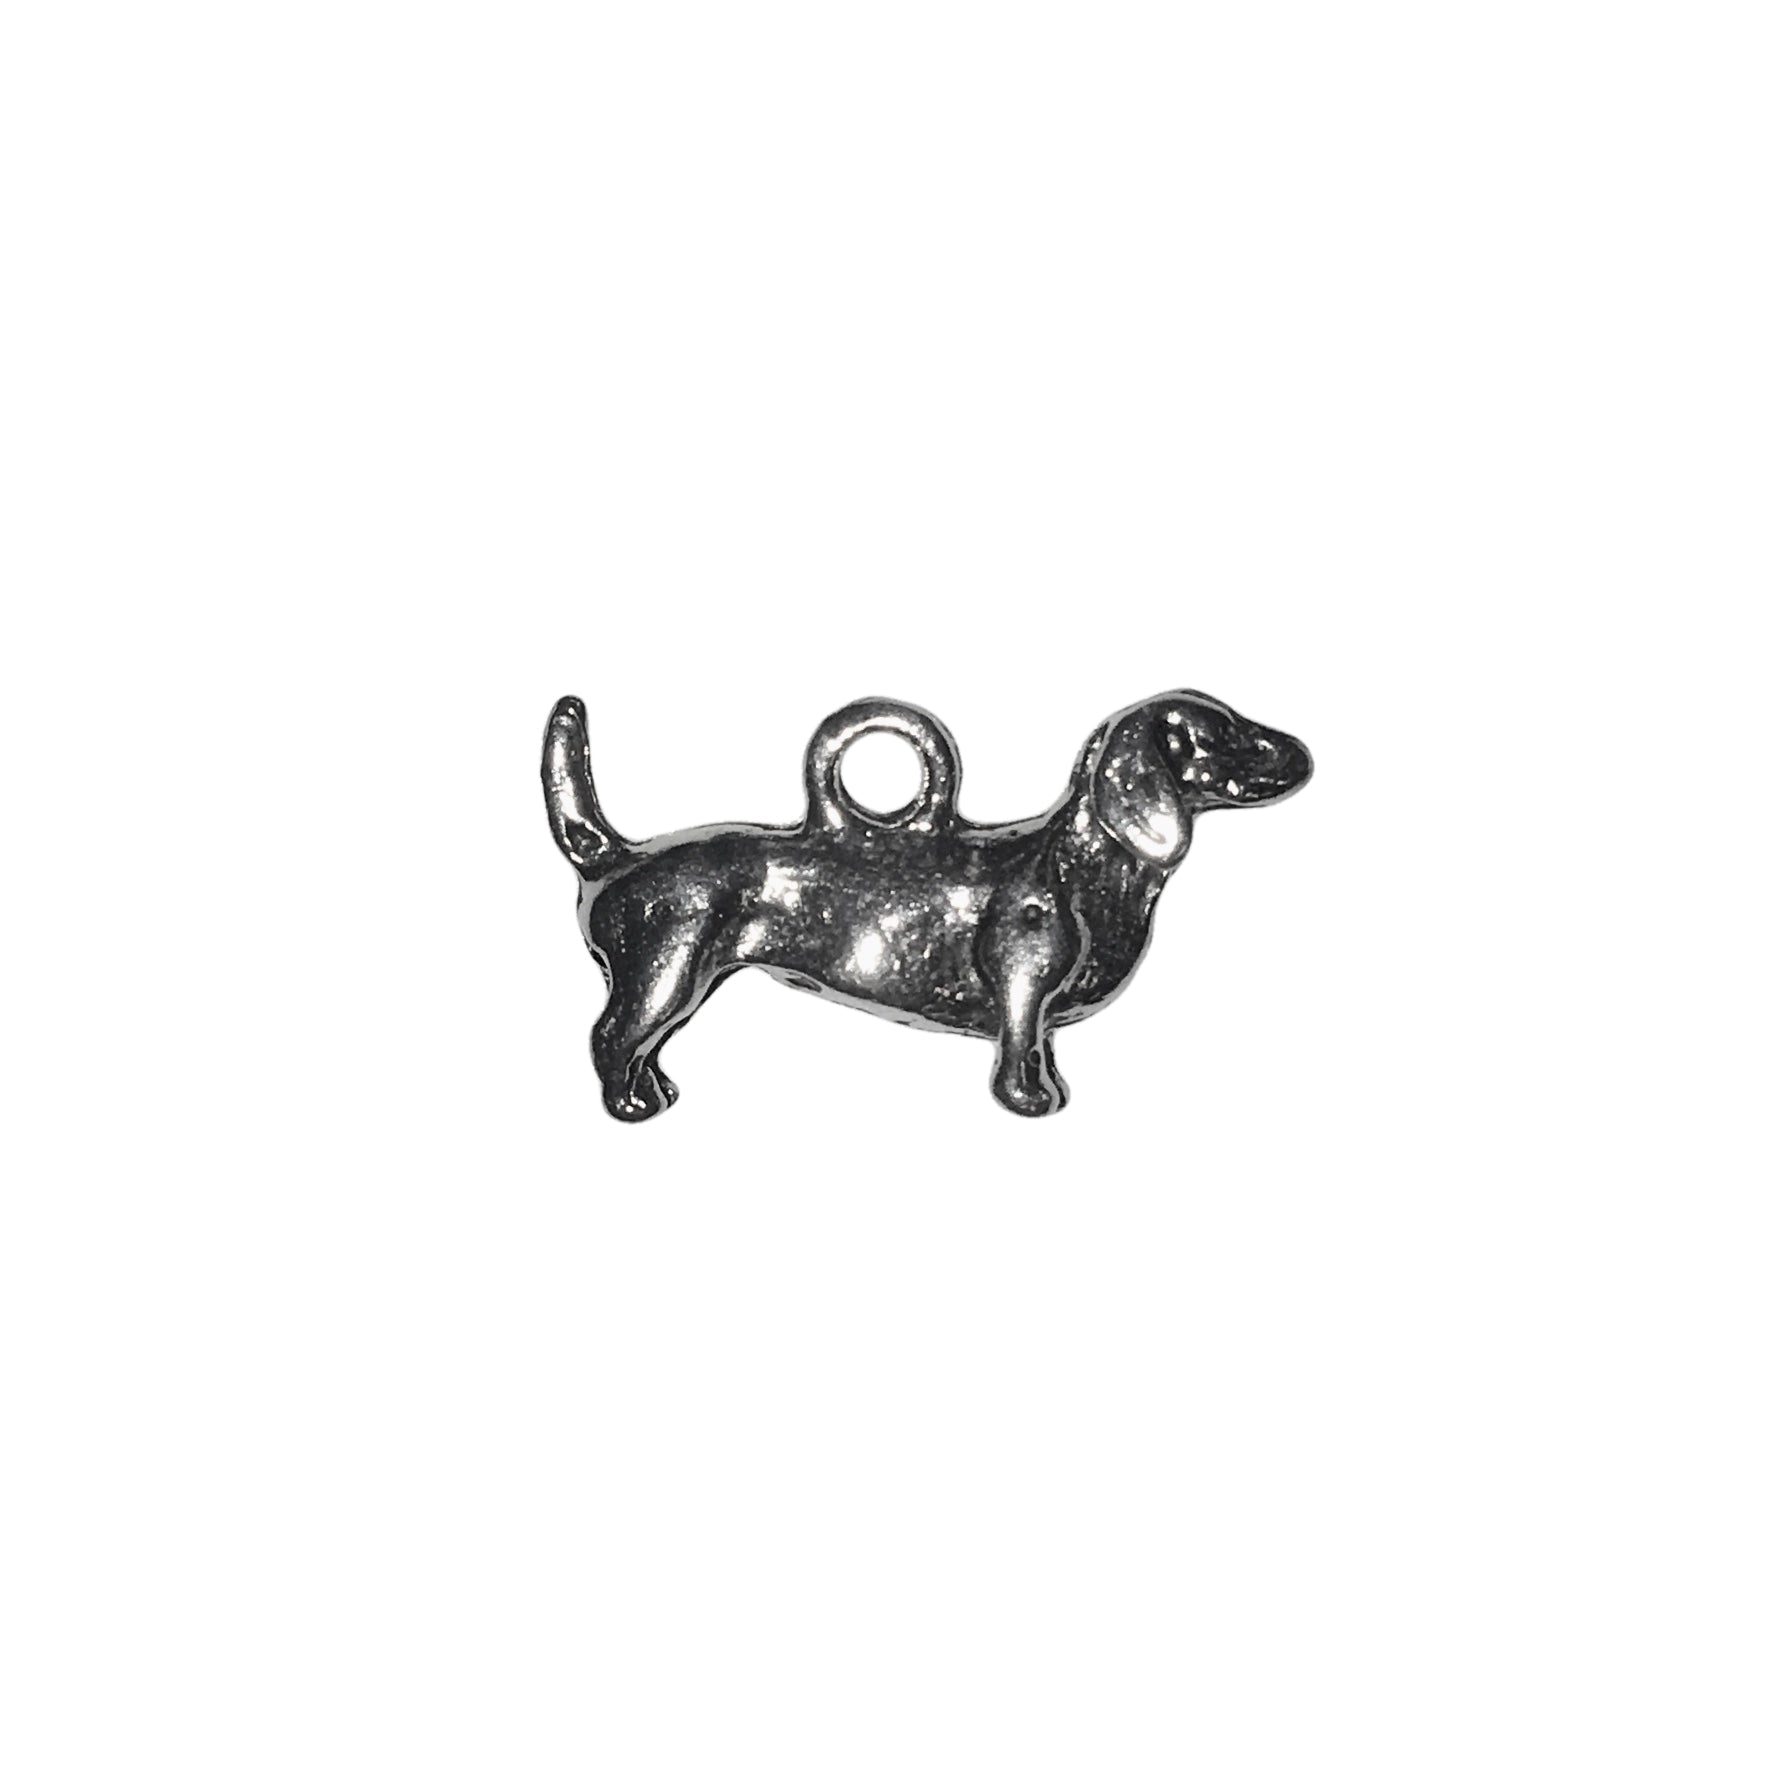 Daschund Charms - Qty 5 - Lead Free Pewter Silver - American Made